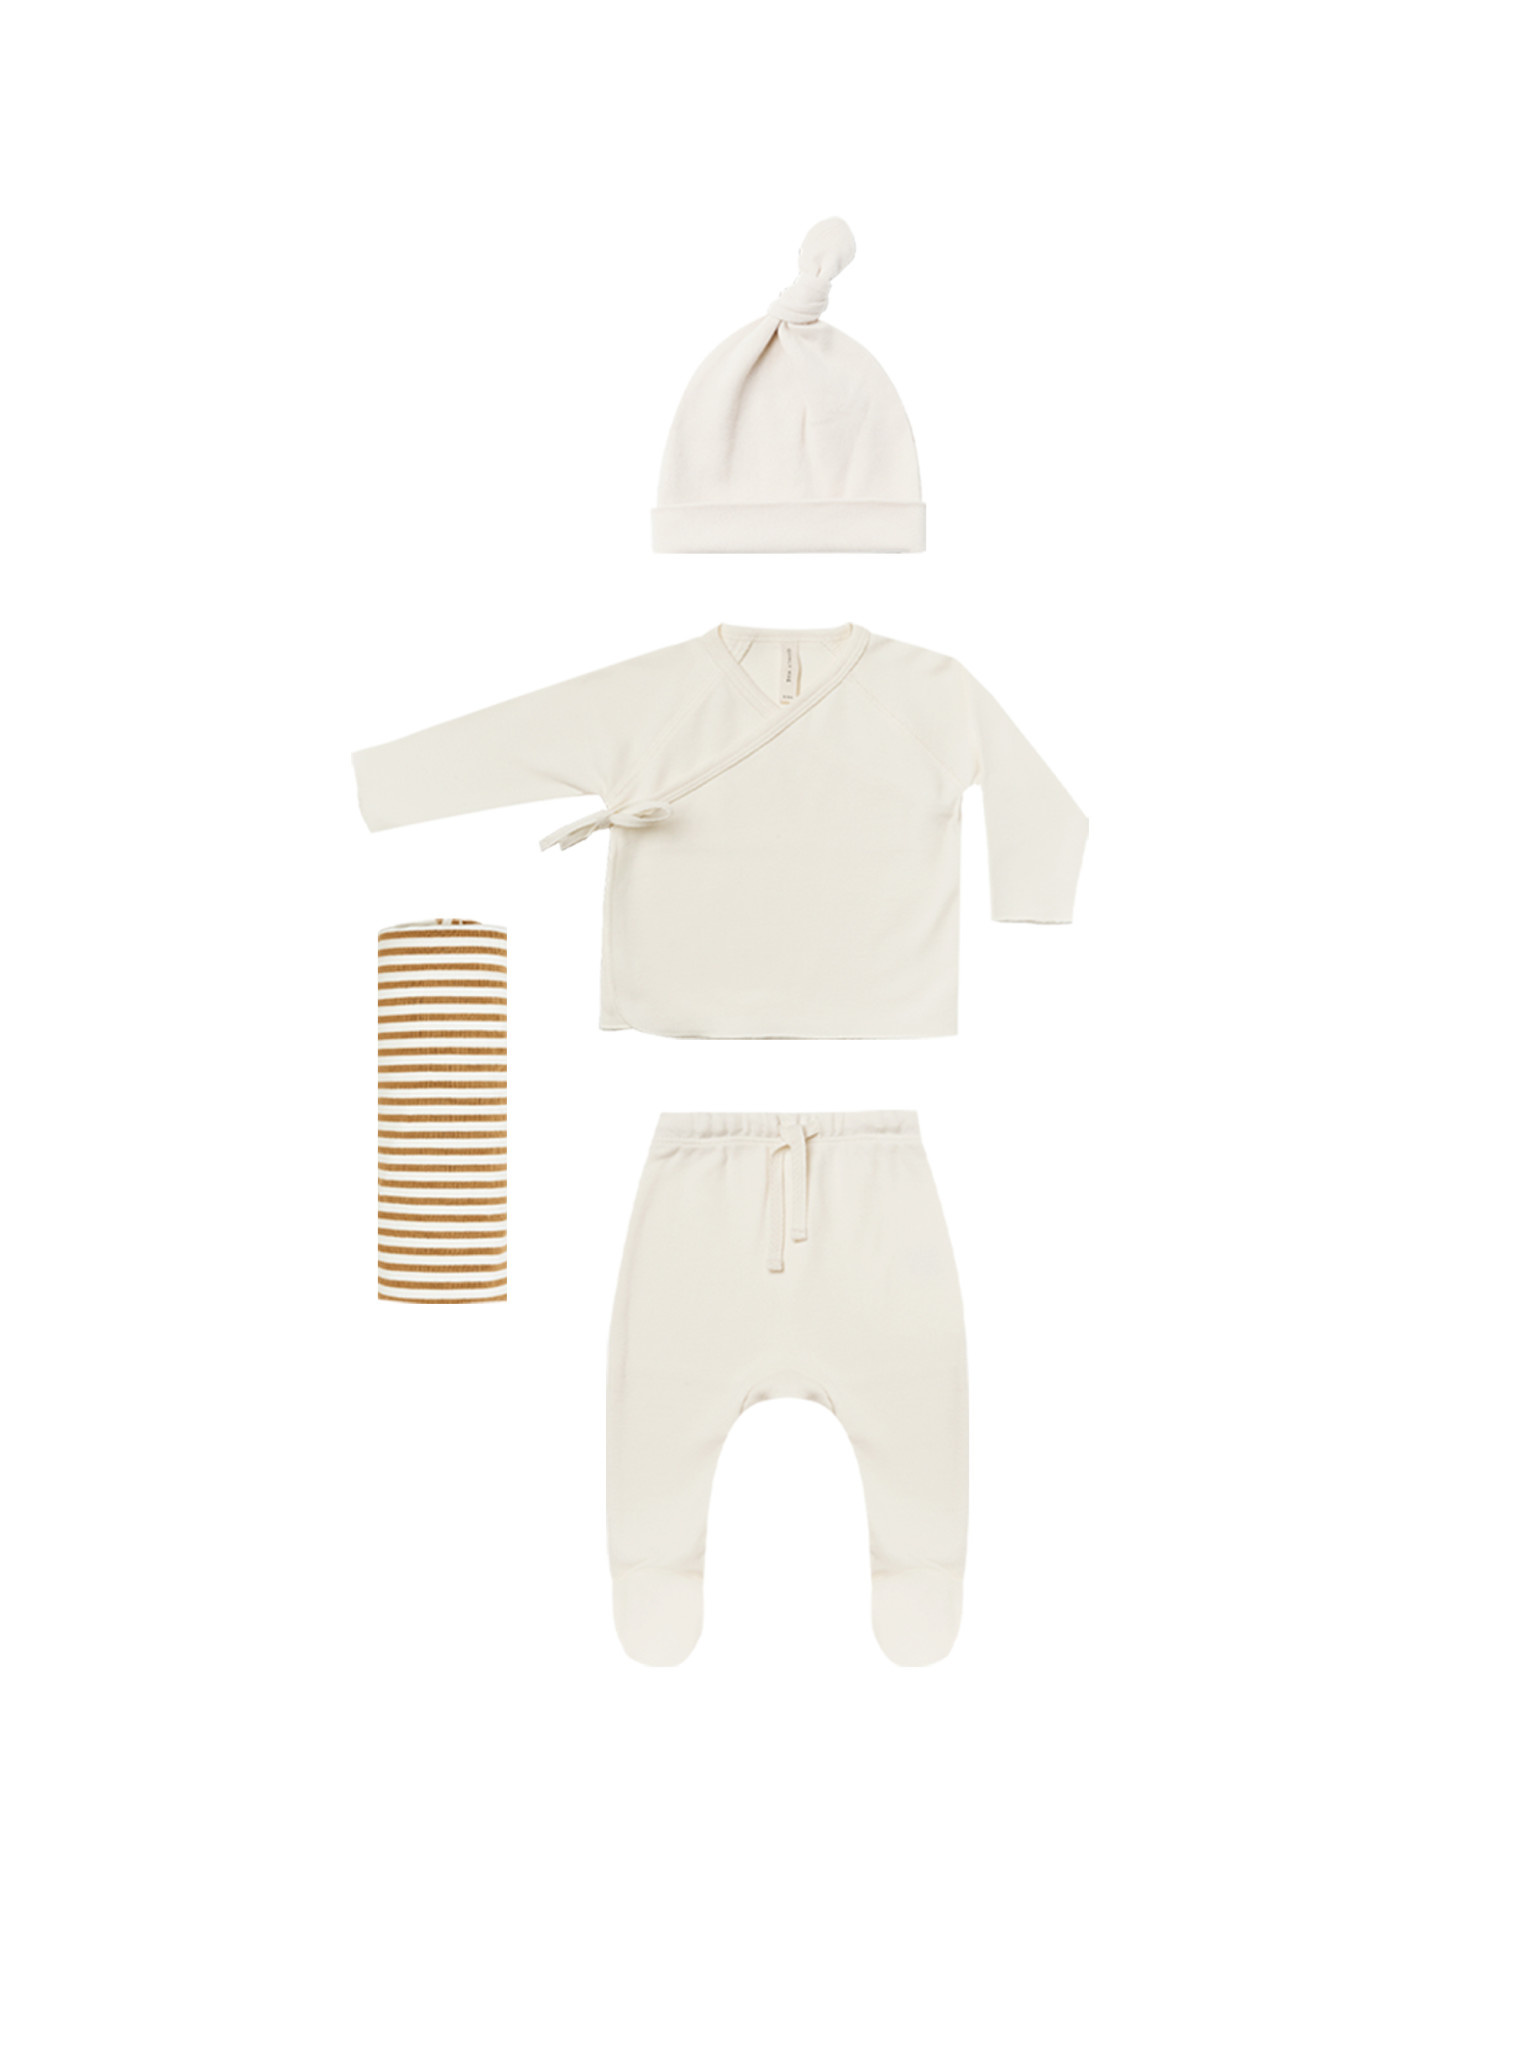 QUINCY MAE Welcome Home Baby Set